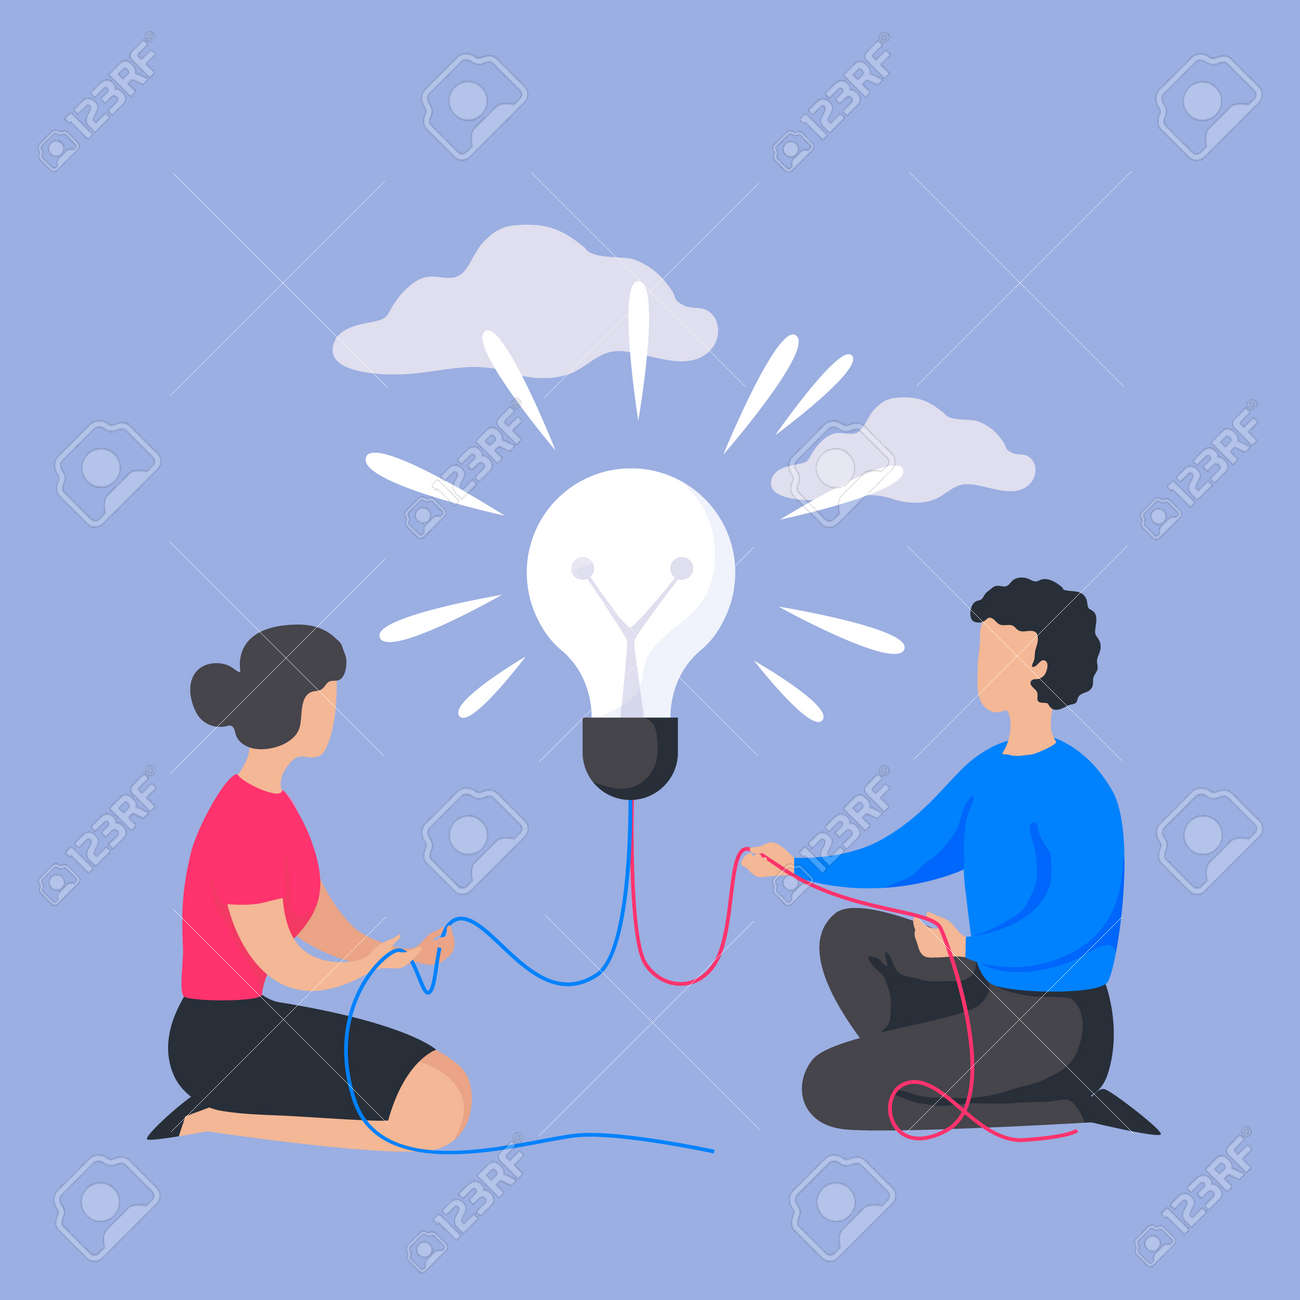 Business people concept. Cartoon man and woman with light bulb. Brainstorming banner, corporate project management or insight in teamwork communication process. Vector flat company partnership - 158329199